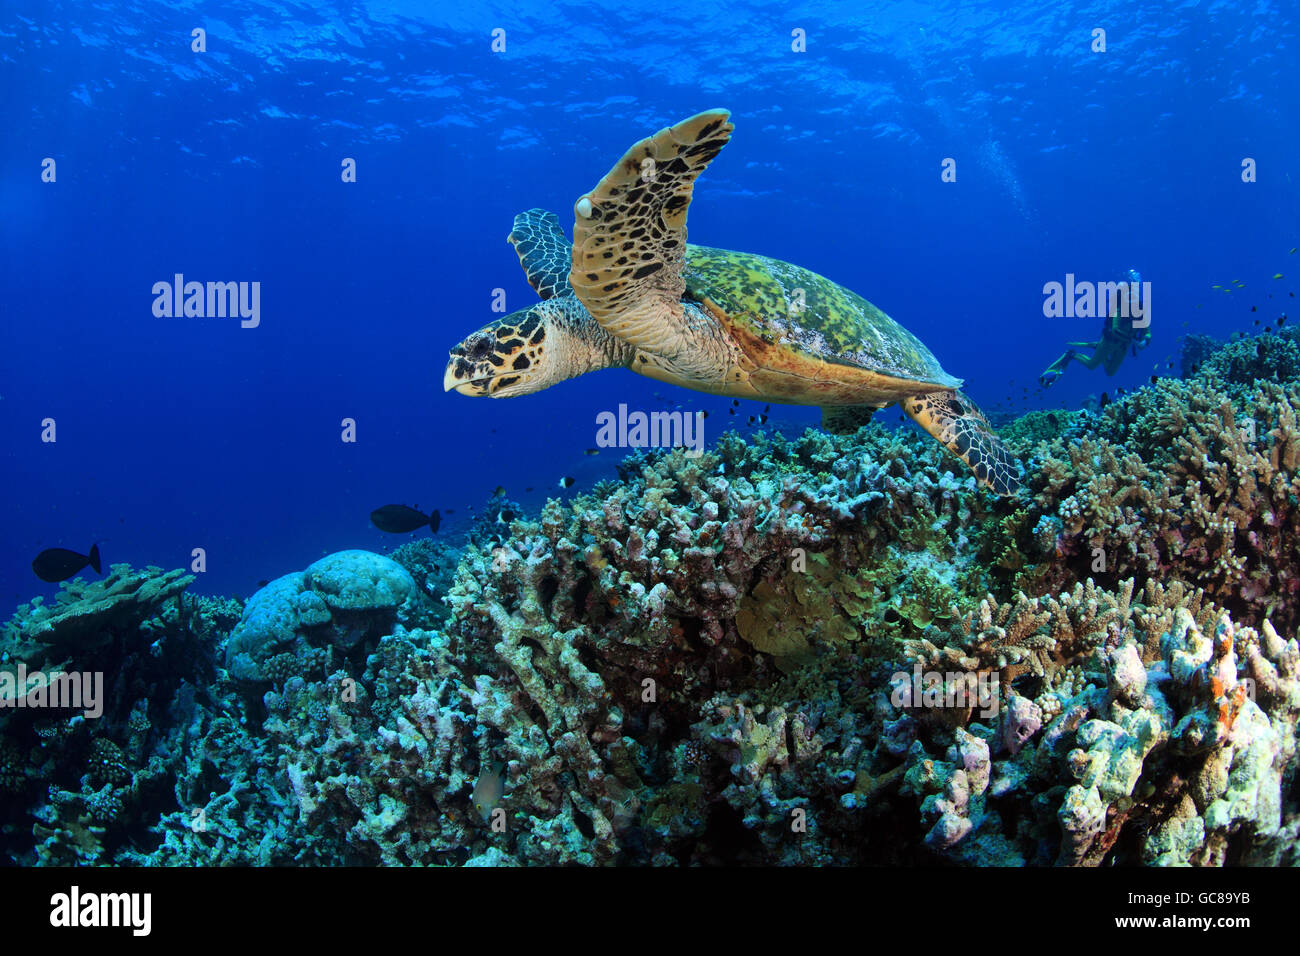 Hawksbill sea turtle (Eretmochelys, imbricata) in the tropical coral reef - Stock Image